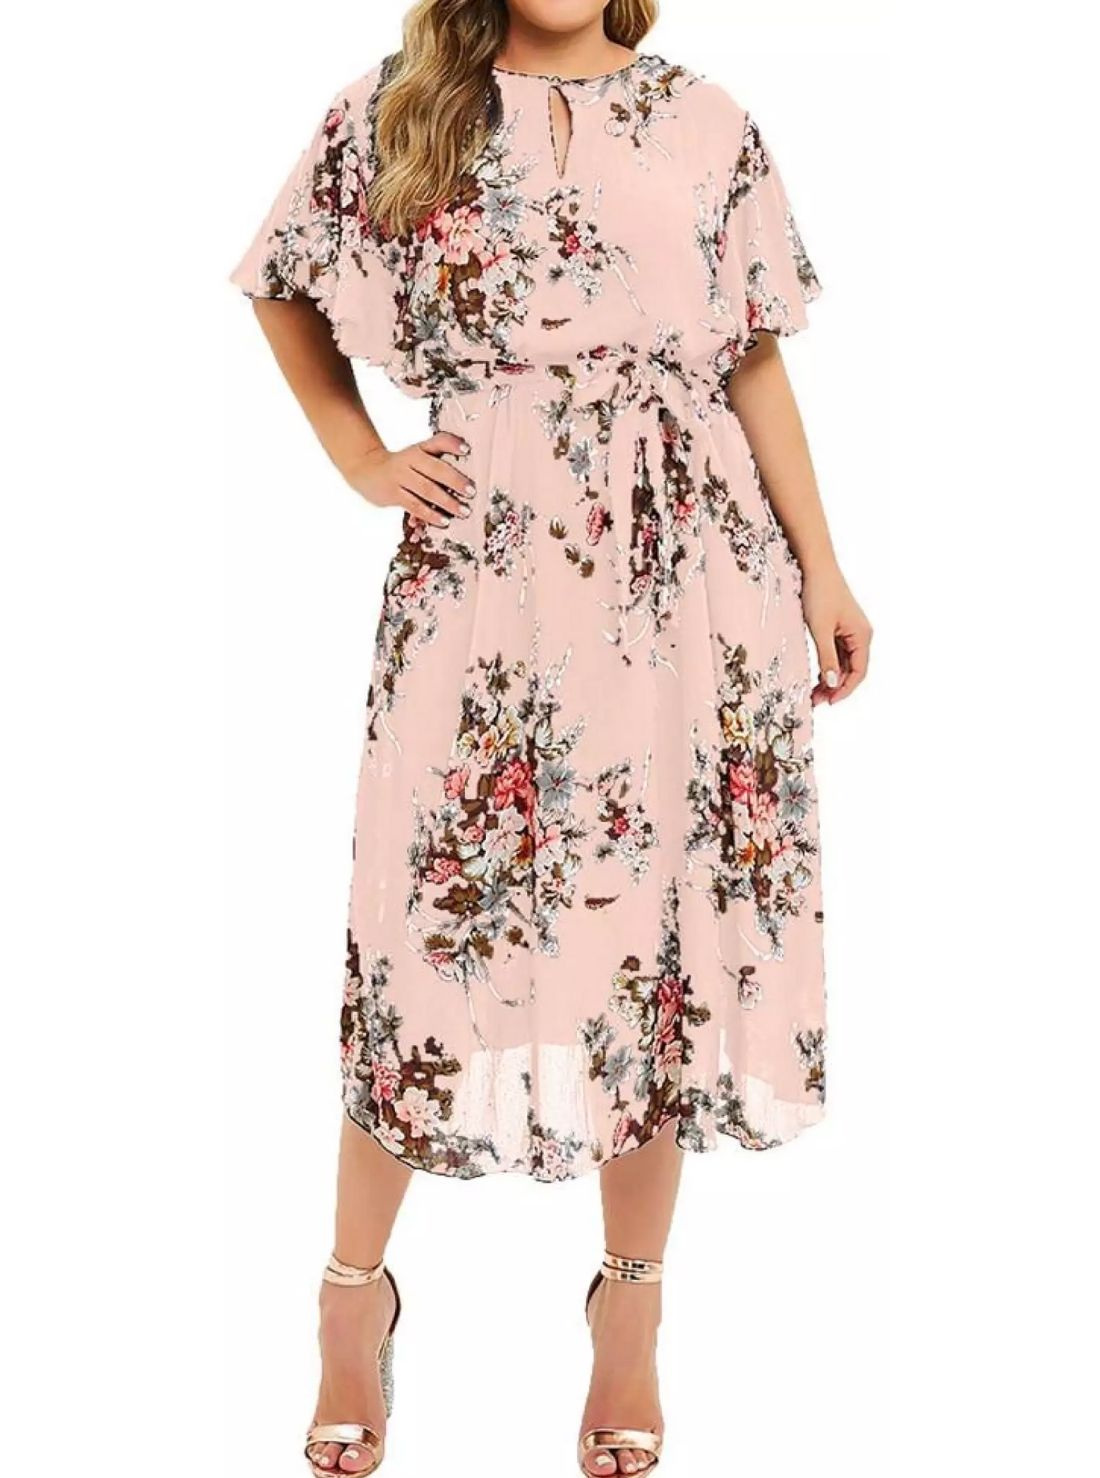 Short Sleeved Wholesale Casual Dresses